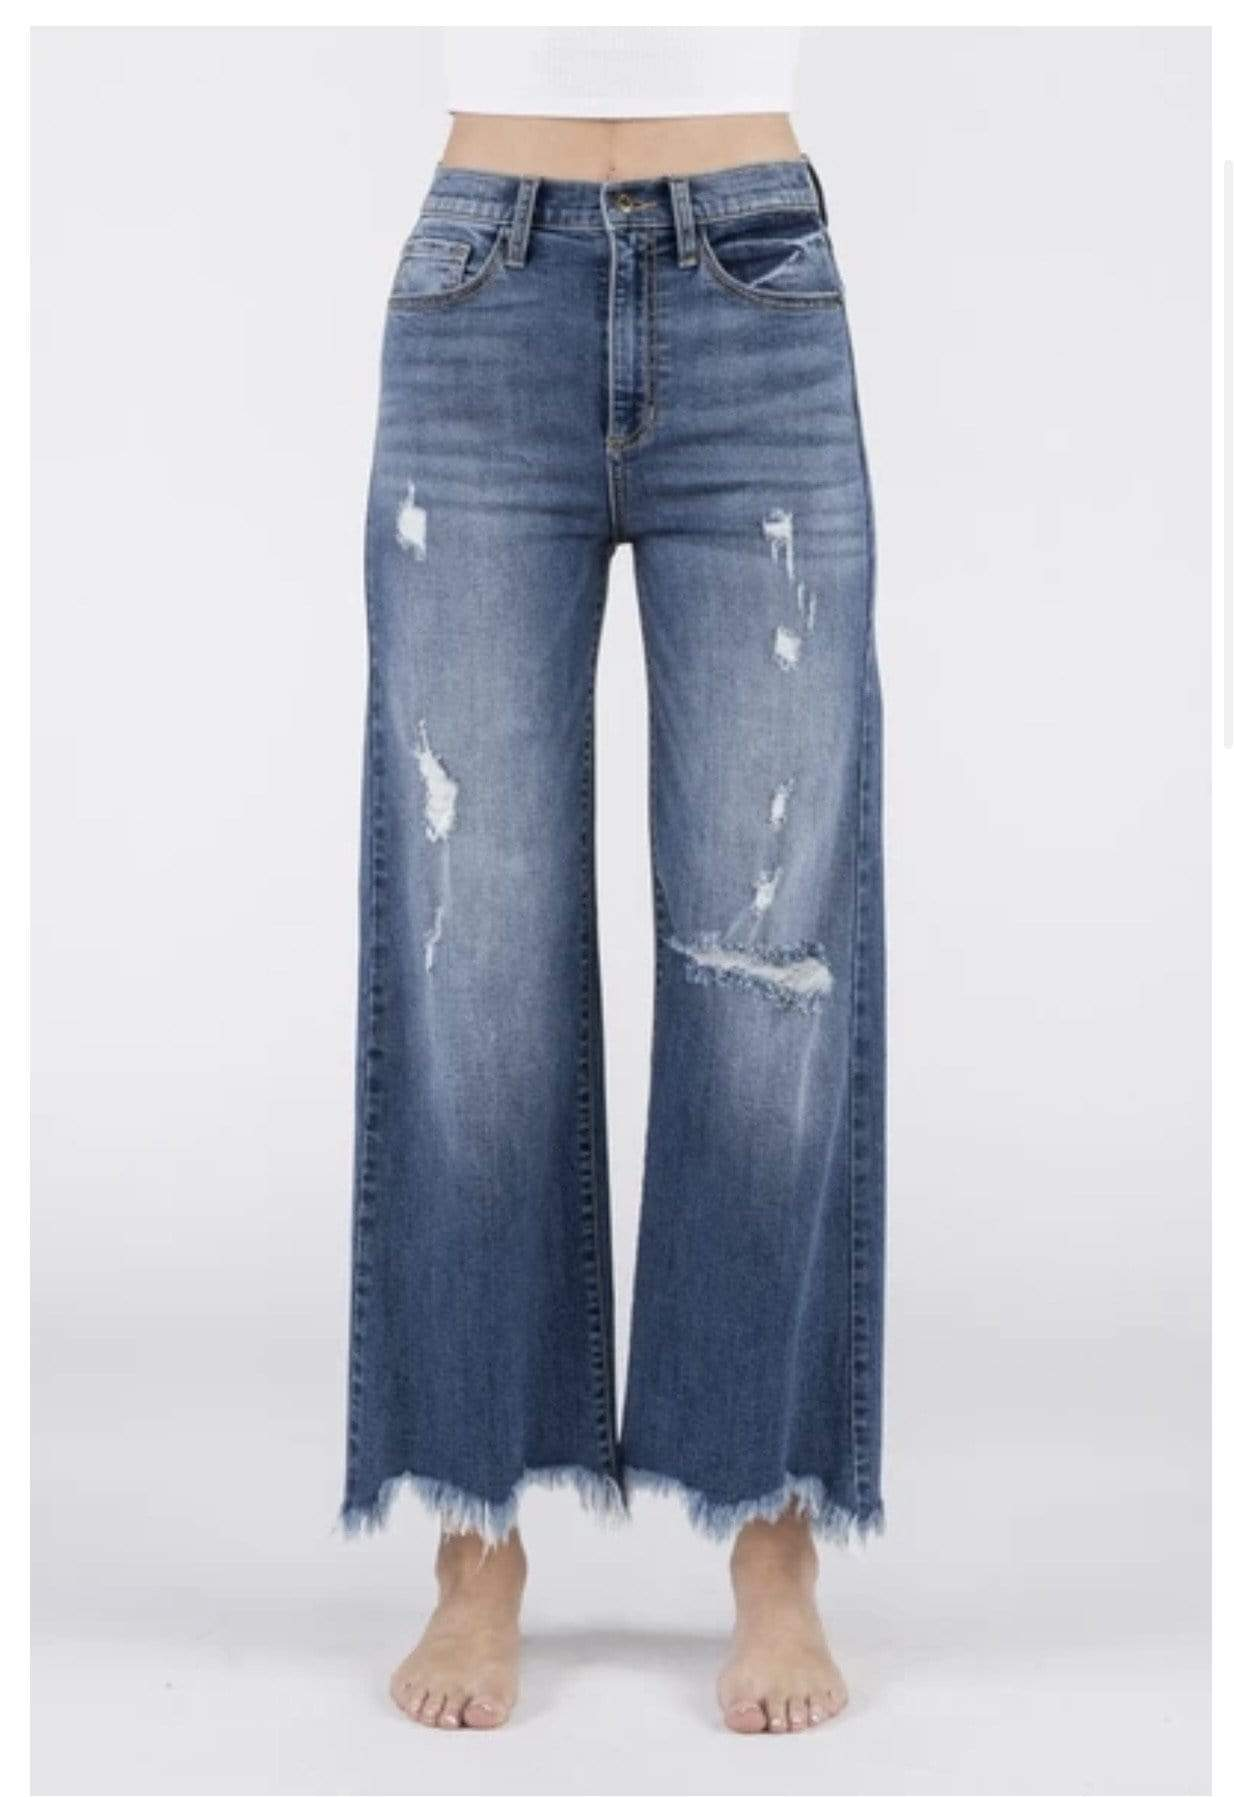 High Rise Distressed Jeans - Medium Dark